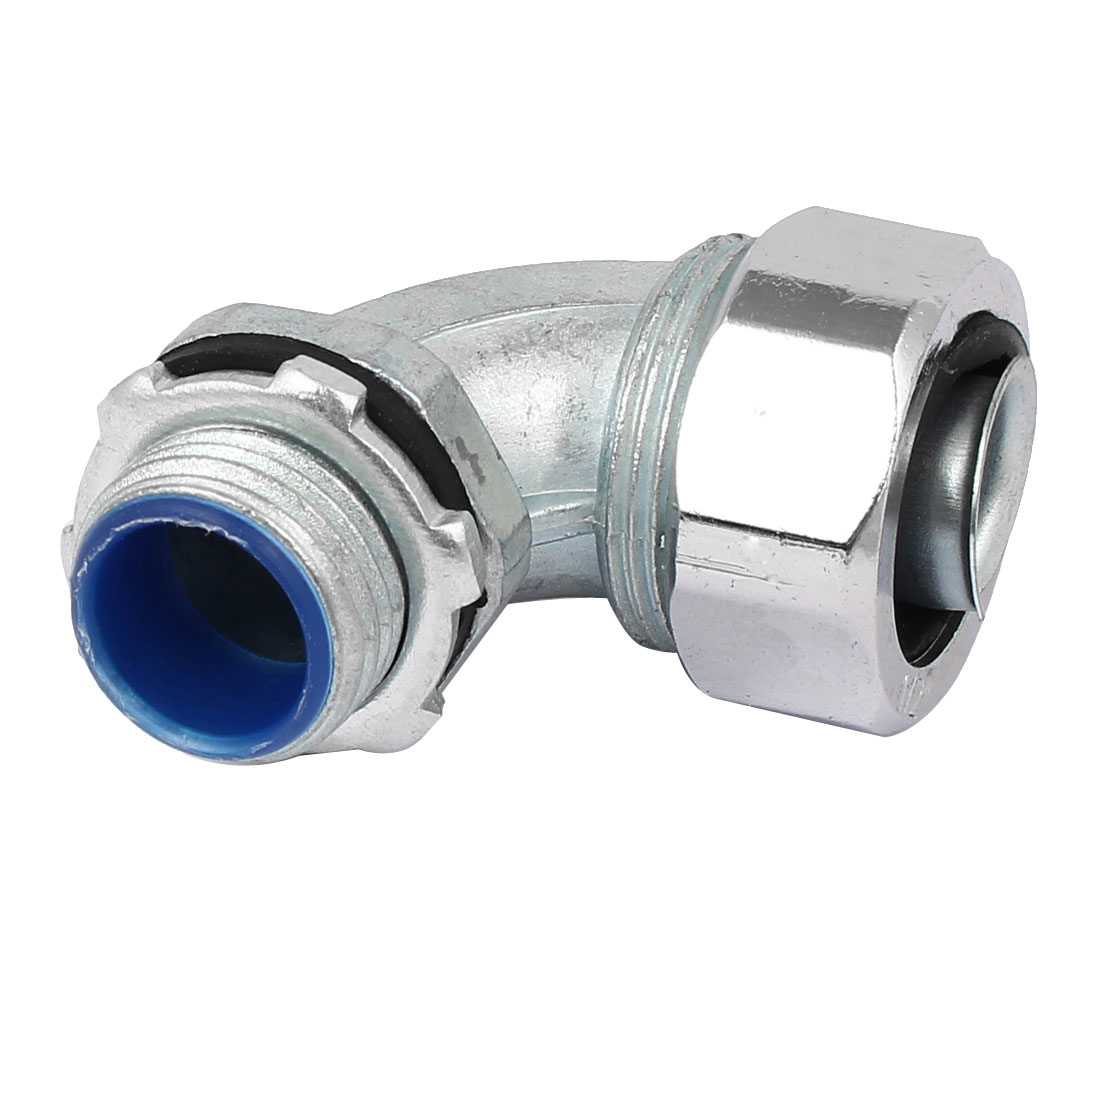 21mm 1/2BSP Male Thread 90 Degree Elbow Fitting Pipe Connector Silver Tone